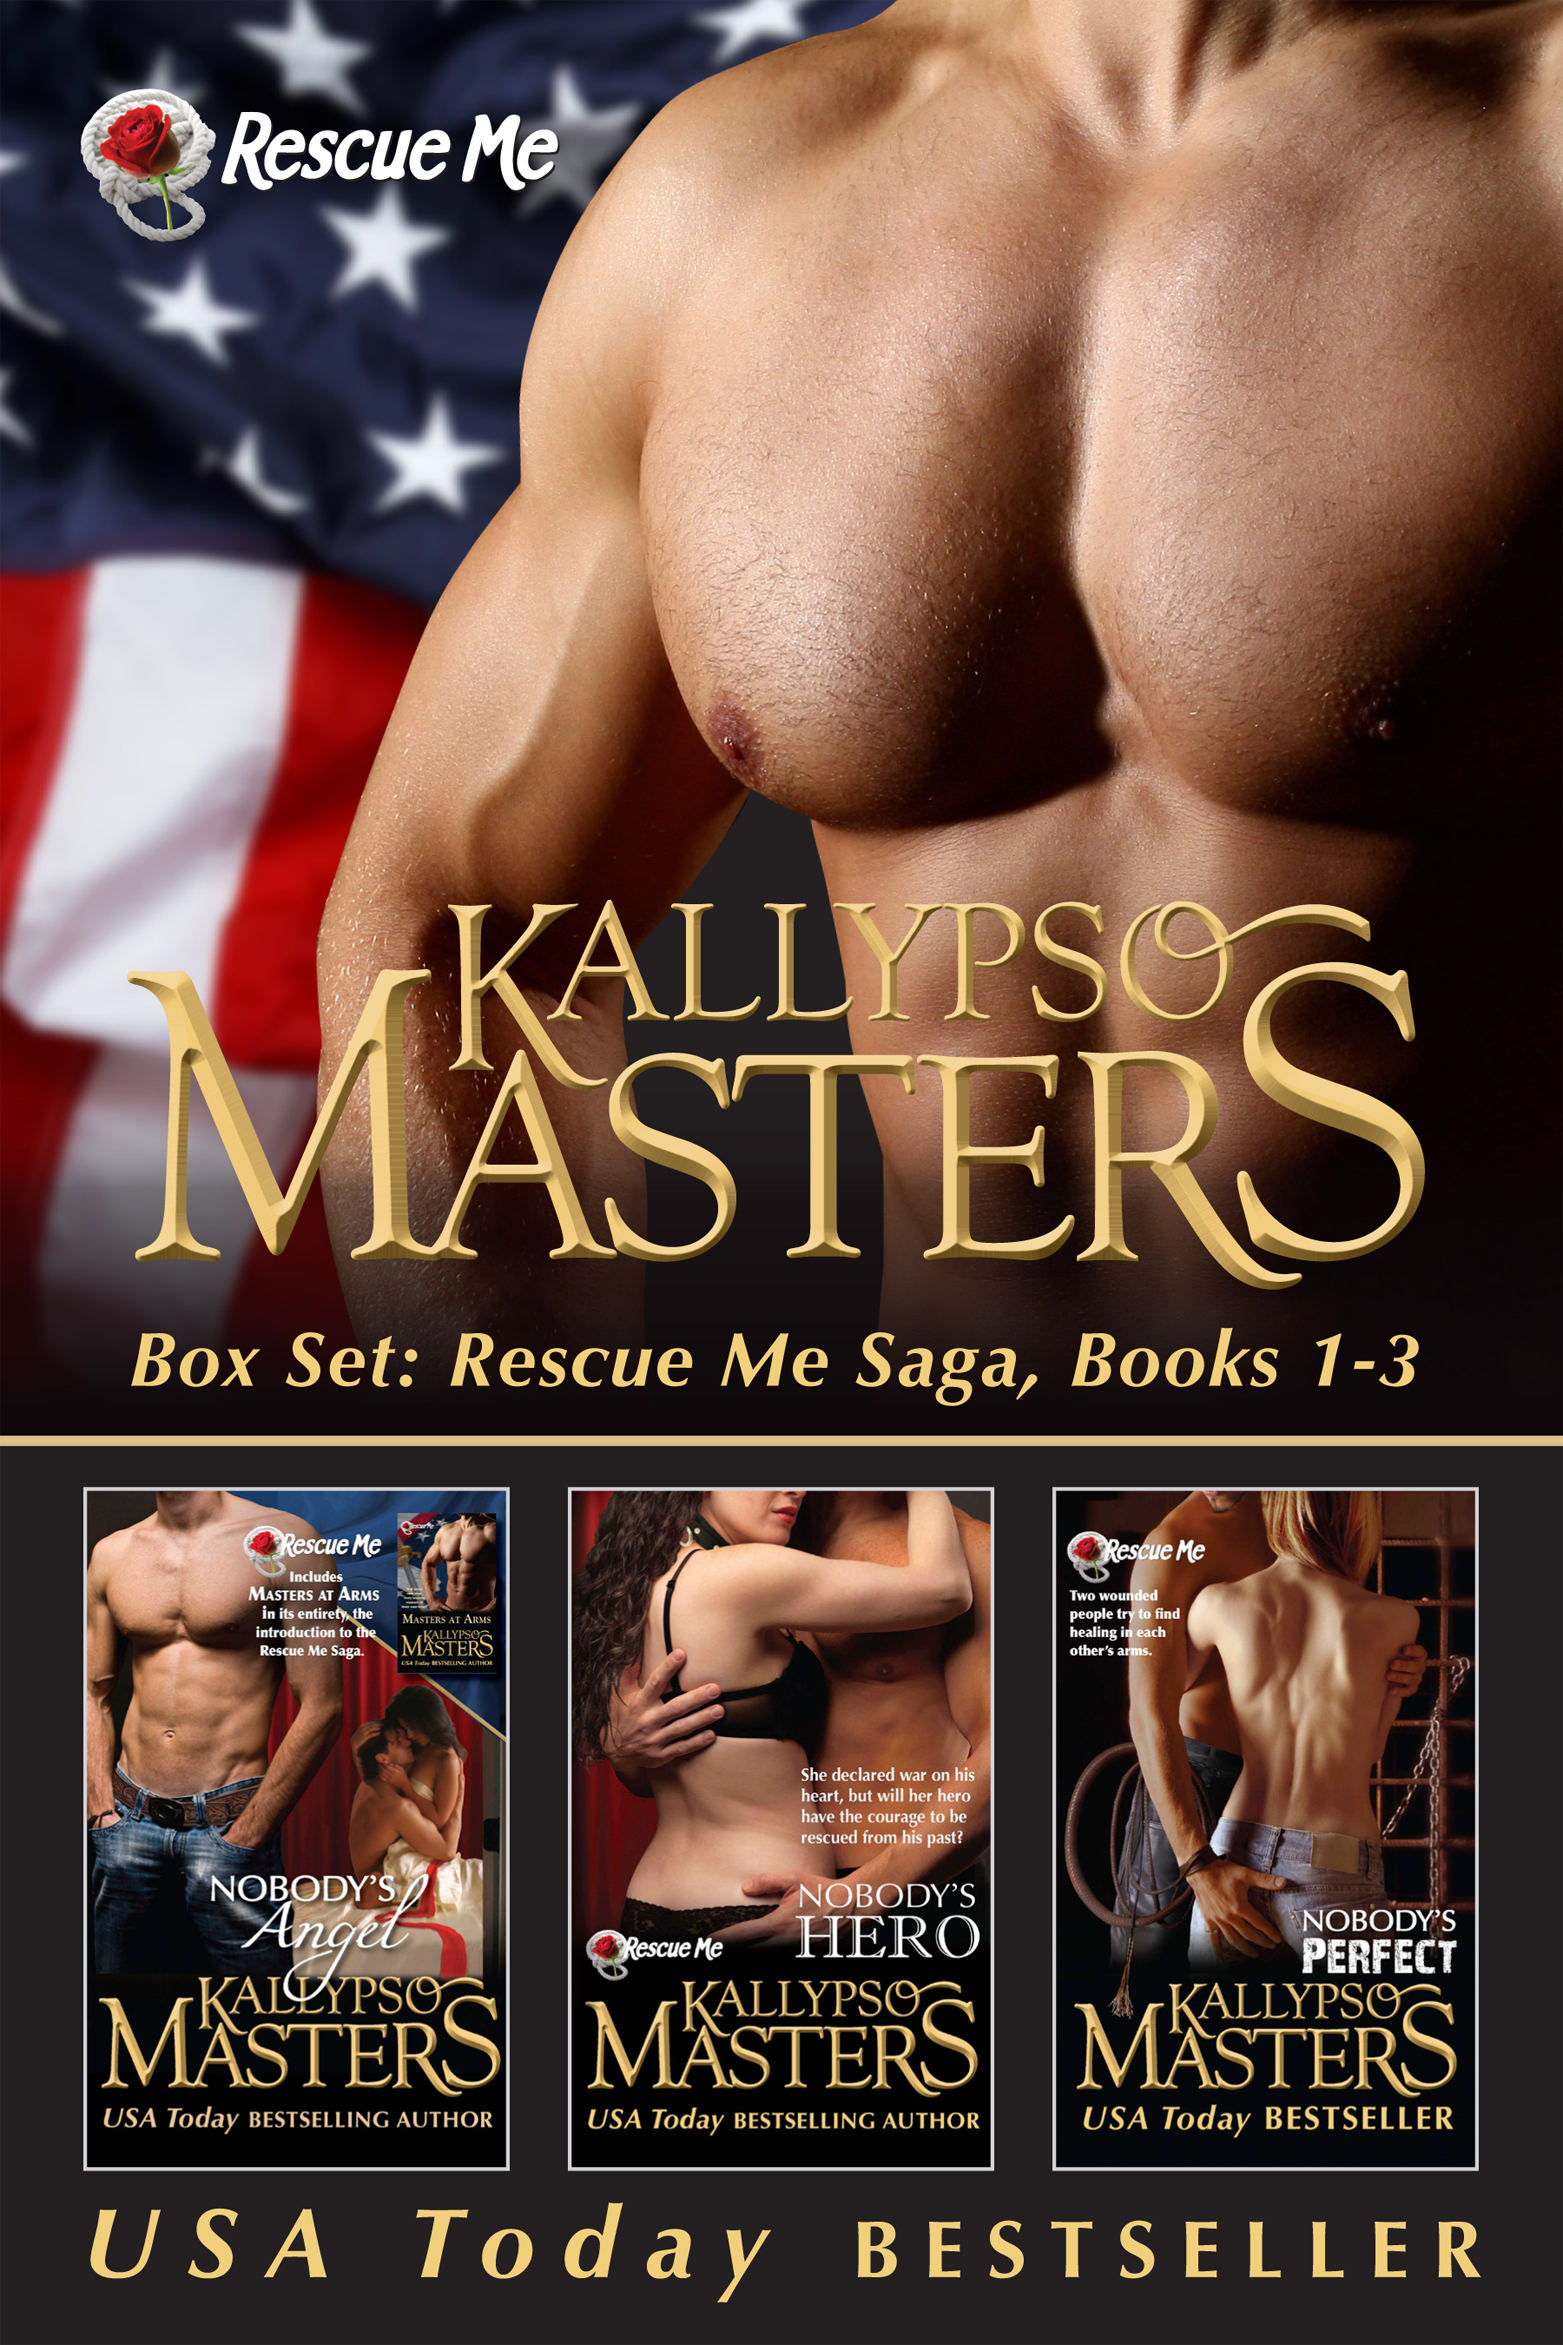 Box Set: Rescue Me Saga, Books 1-3